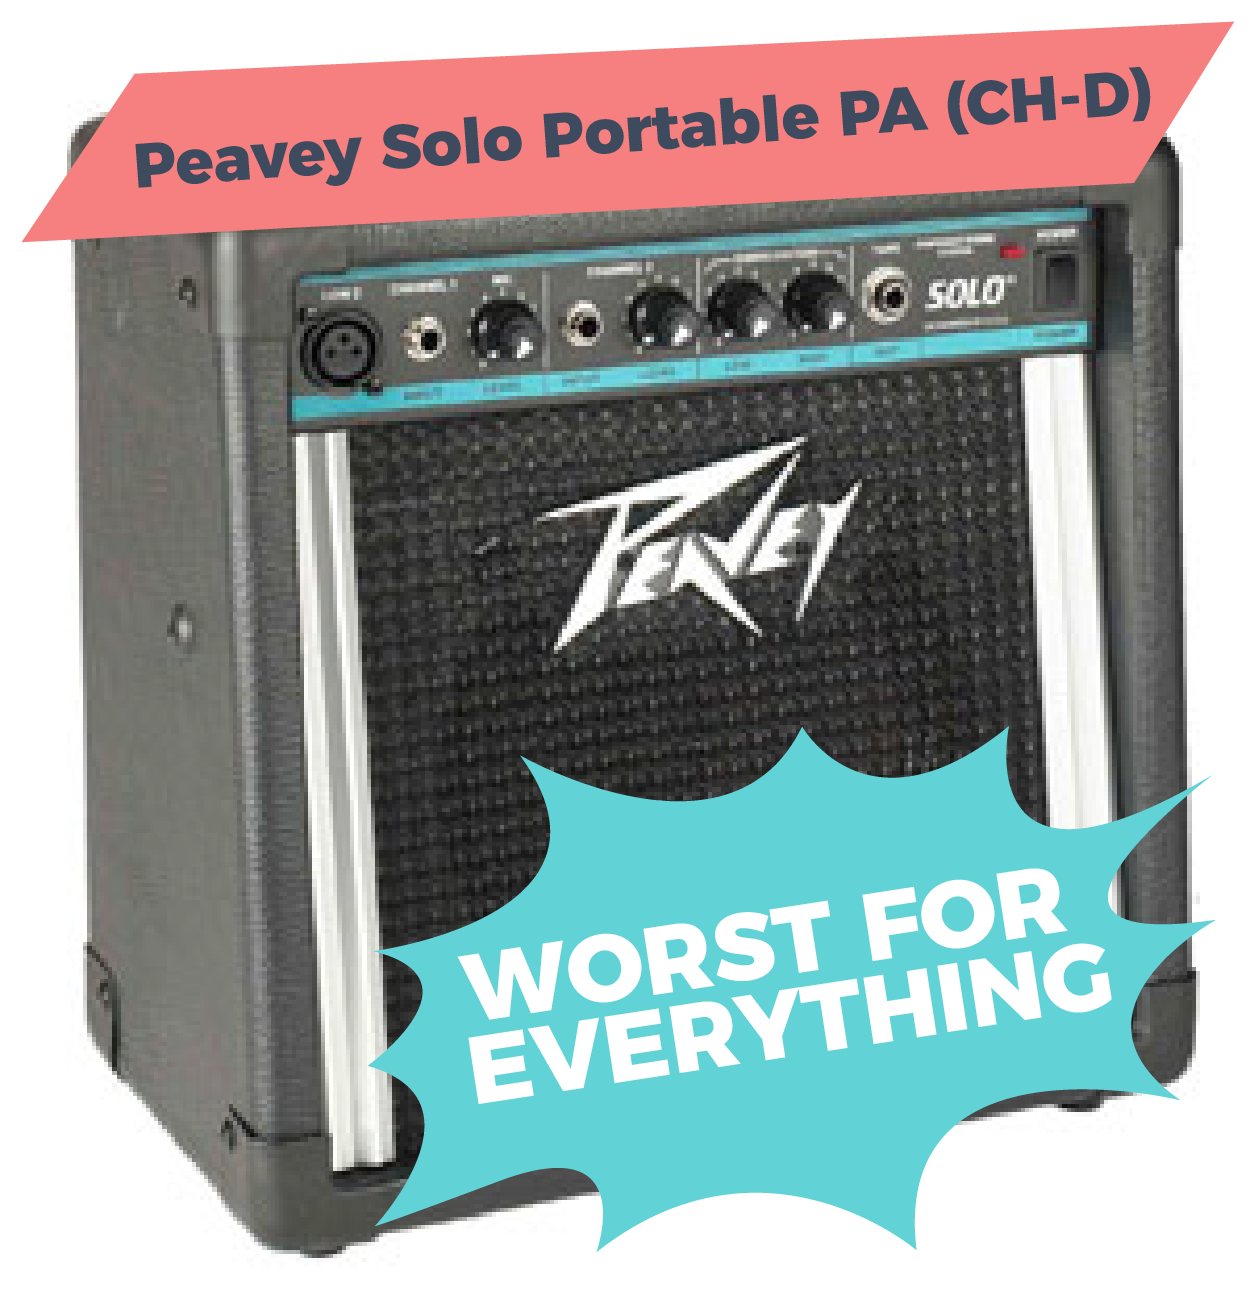 Peavey Solo Portable PA (CH-D), definitely NOT one of the best amps for busking